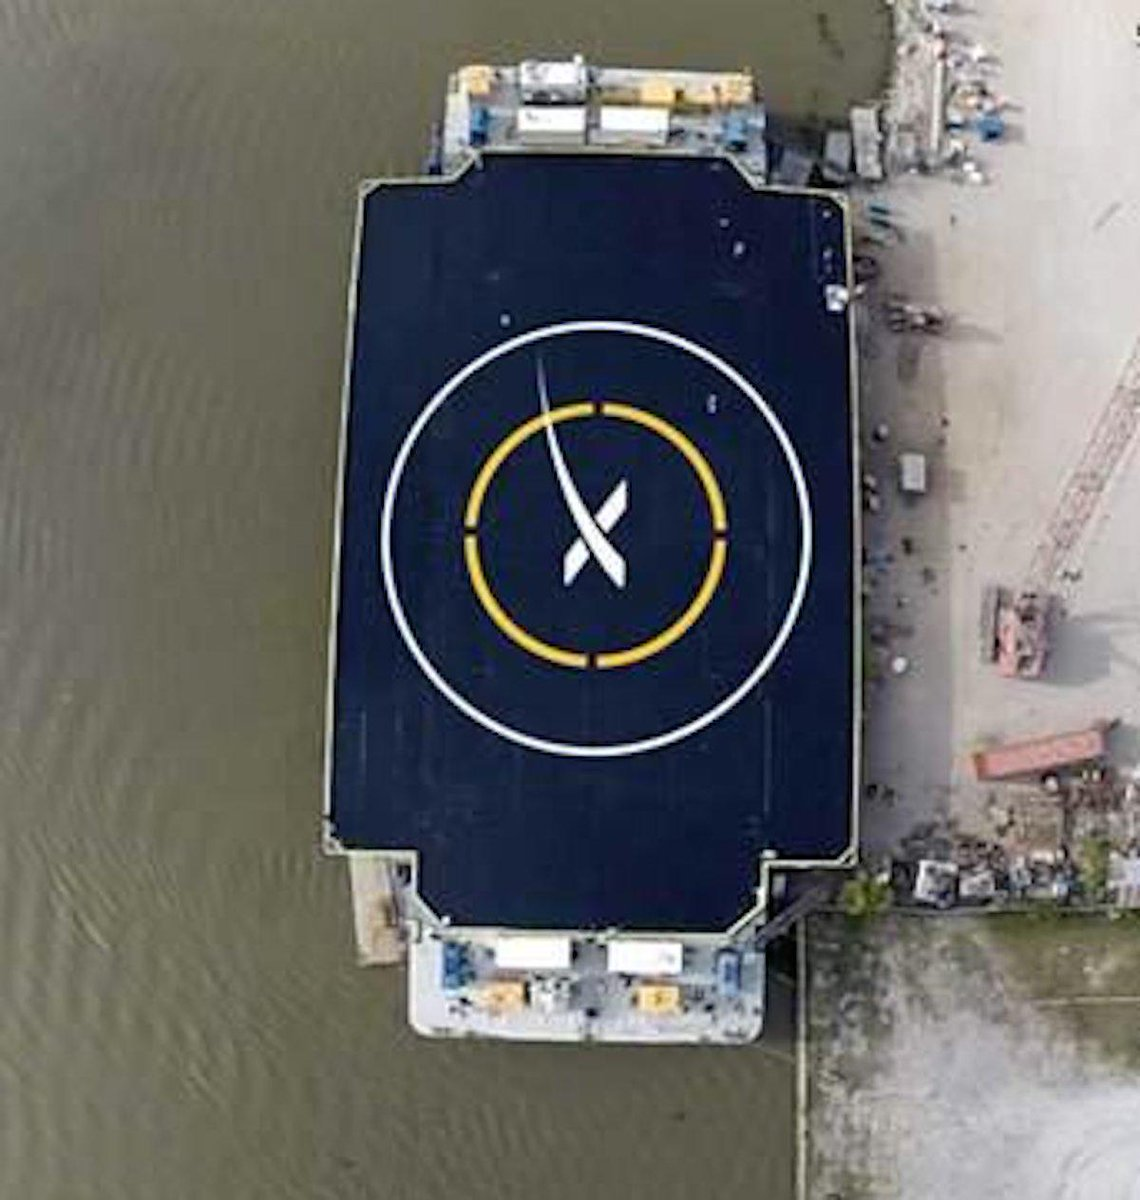 Elon Musk just unveiled a game-changing ocean landing pad for his reusable rockets http://t.co/NPEjepY4nr http://t.co/zCglt22FH2